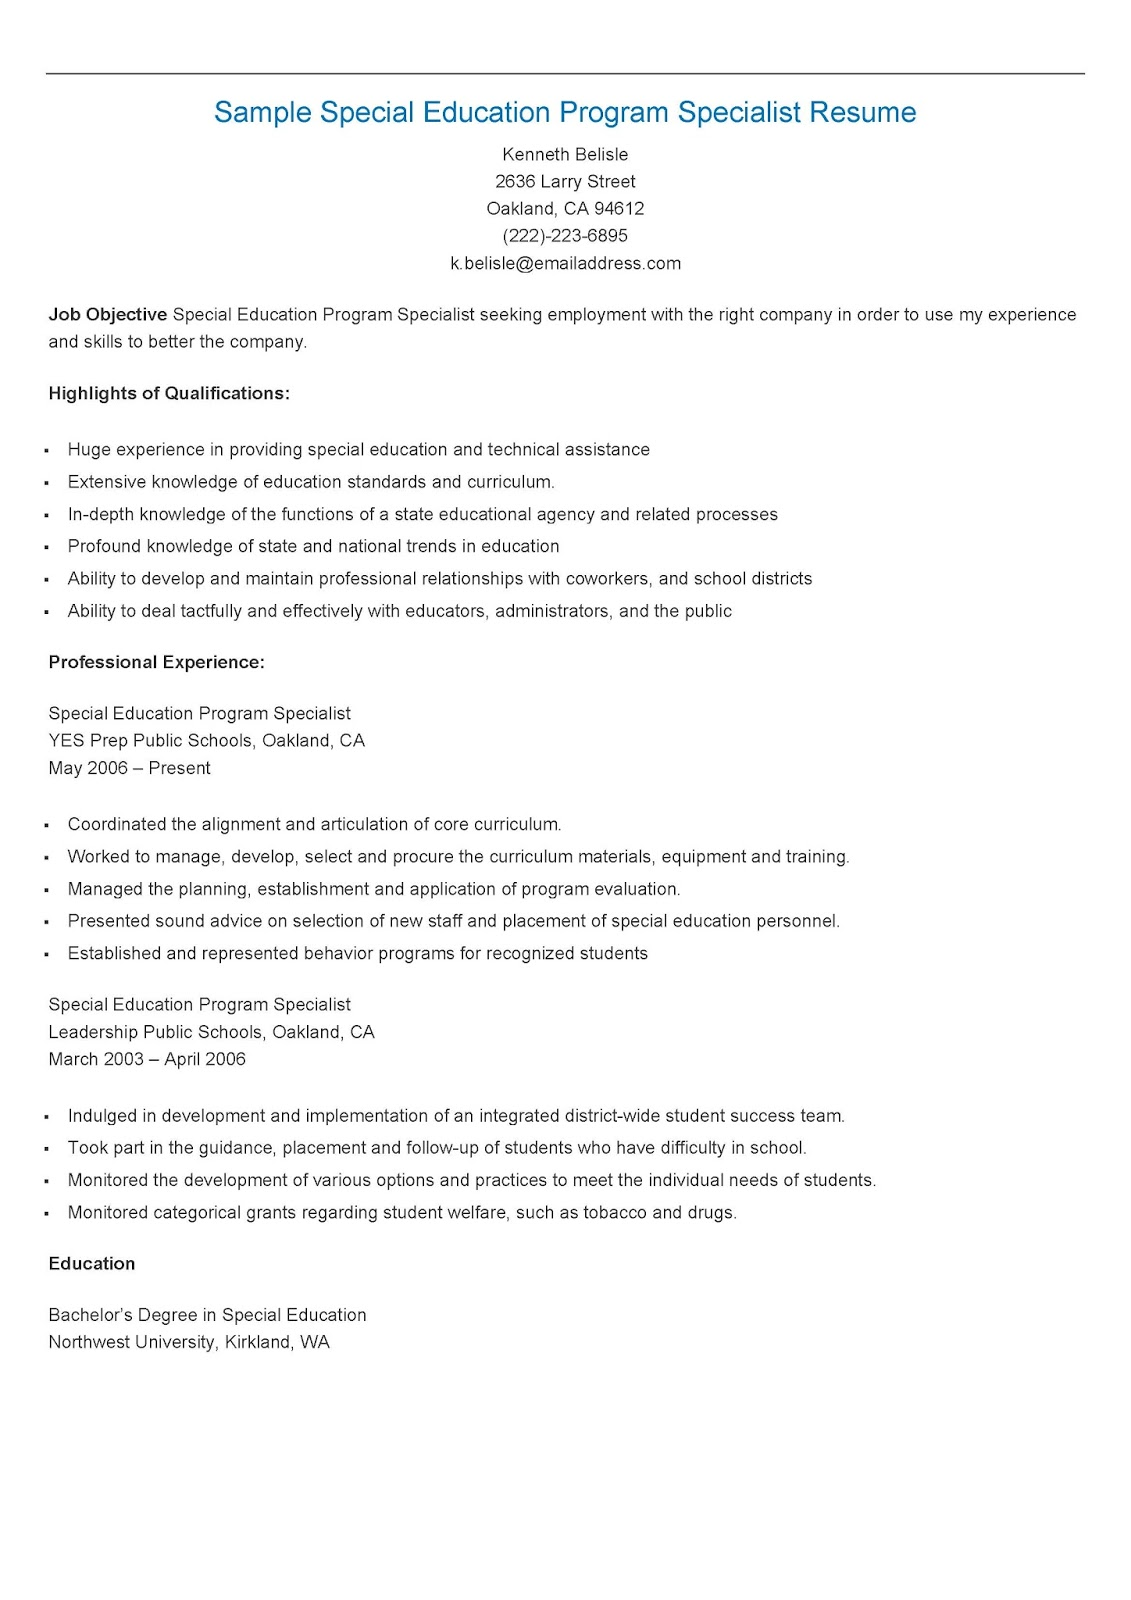 It Security Specialist Resume Resume Samples Sample Special Education Program